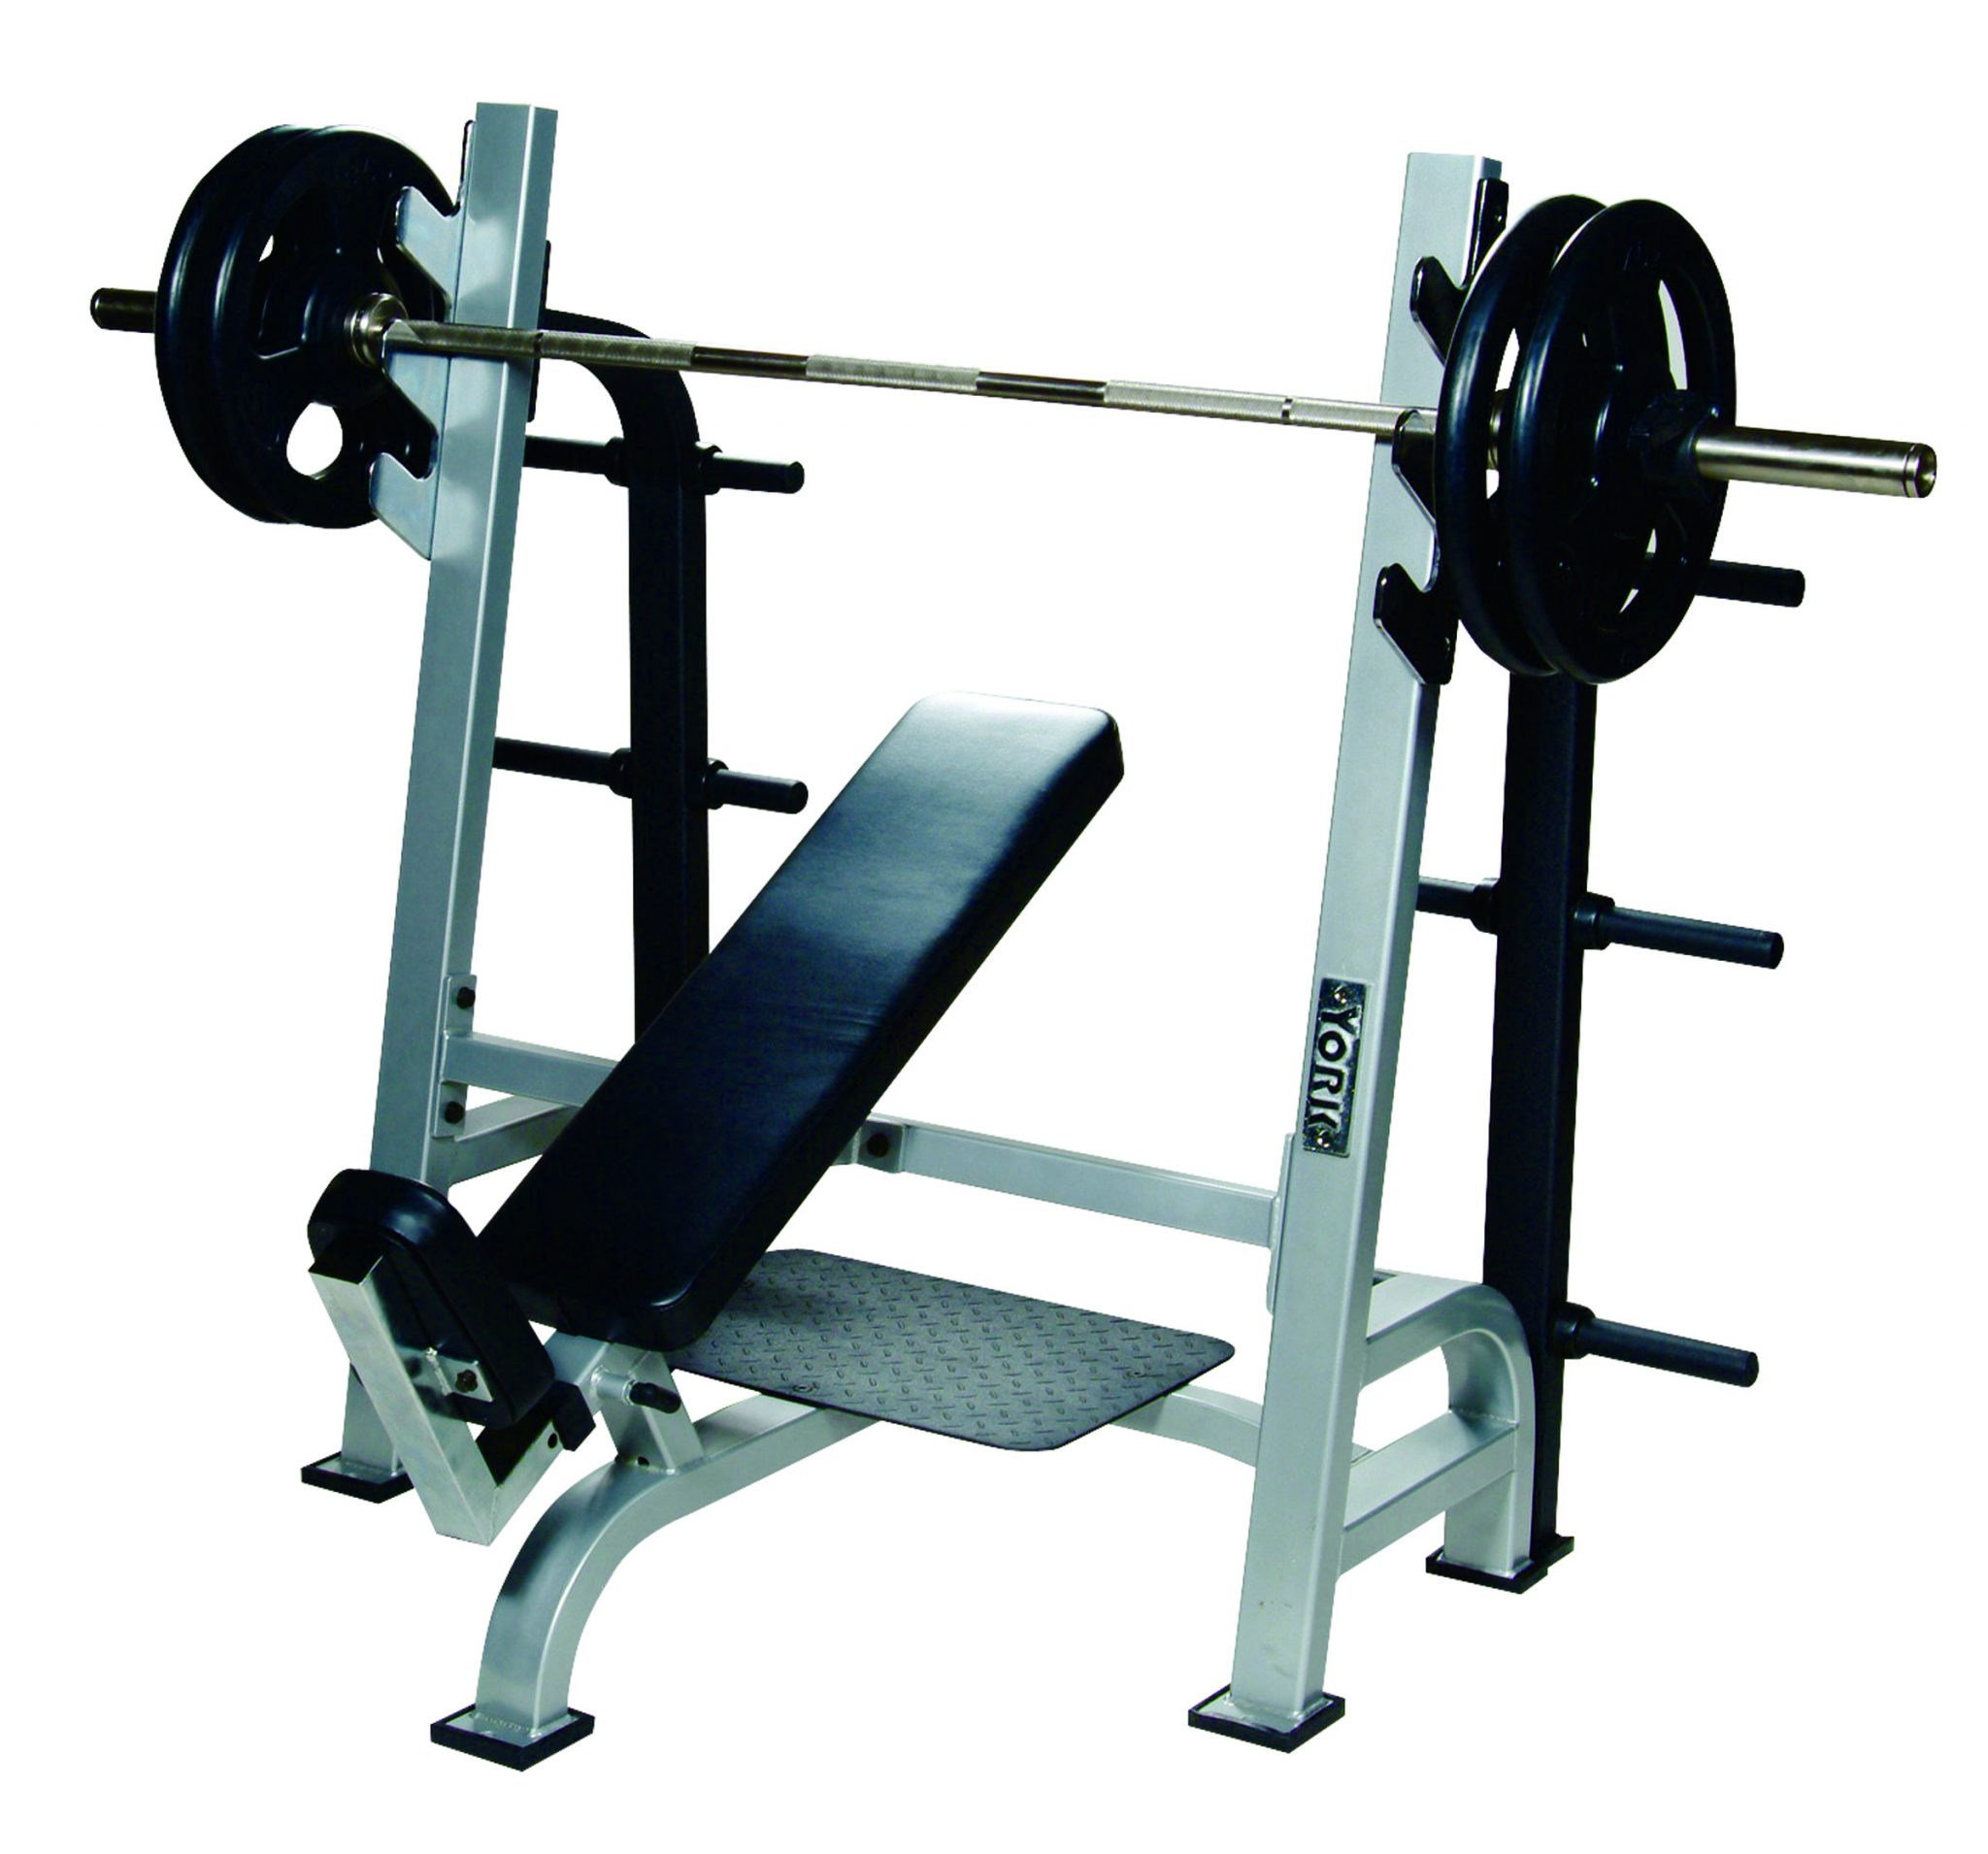 fold bench id down decathlon by ba domyos weight incline